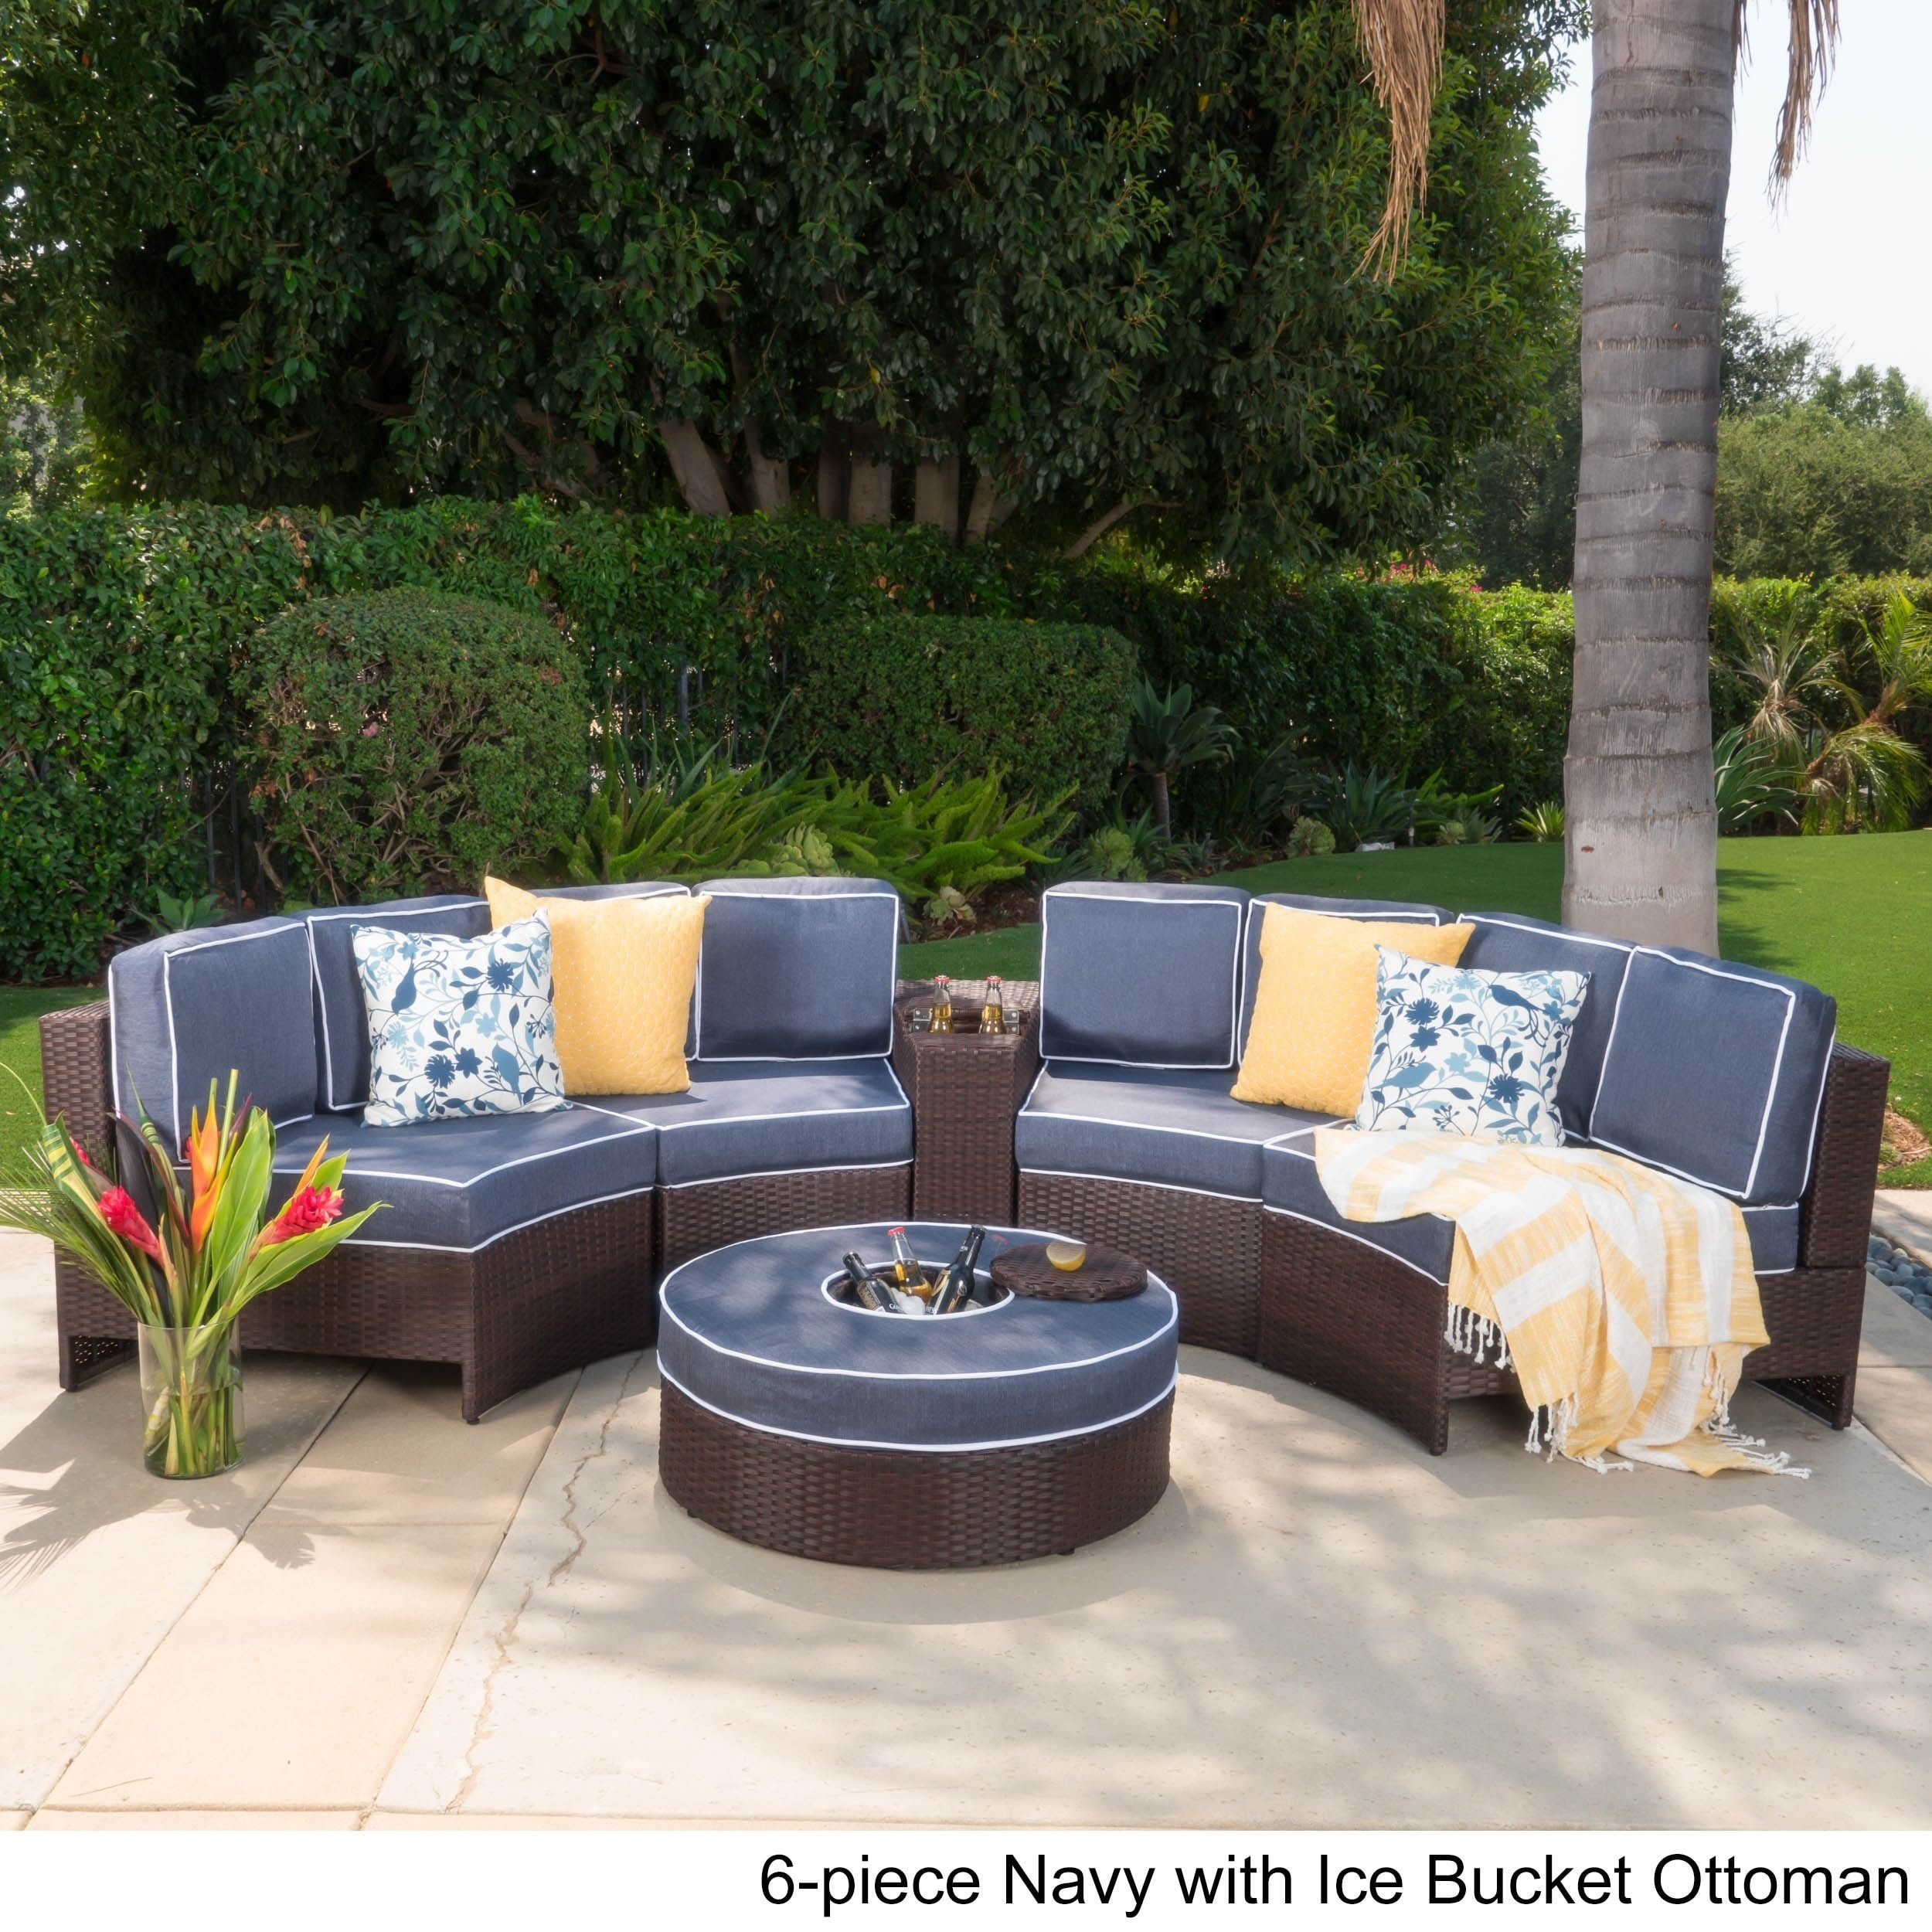 Madras Ibiza Outdoor Wicker Sectional Set with Ottoman by